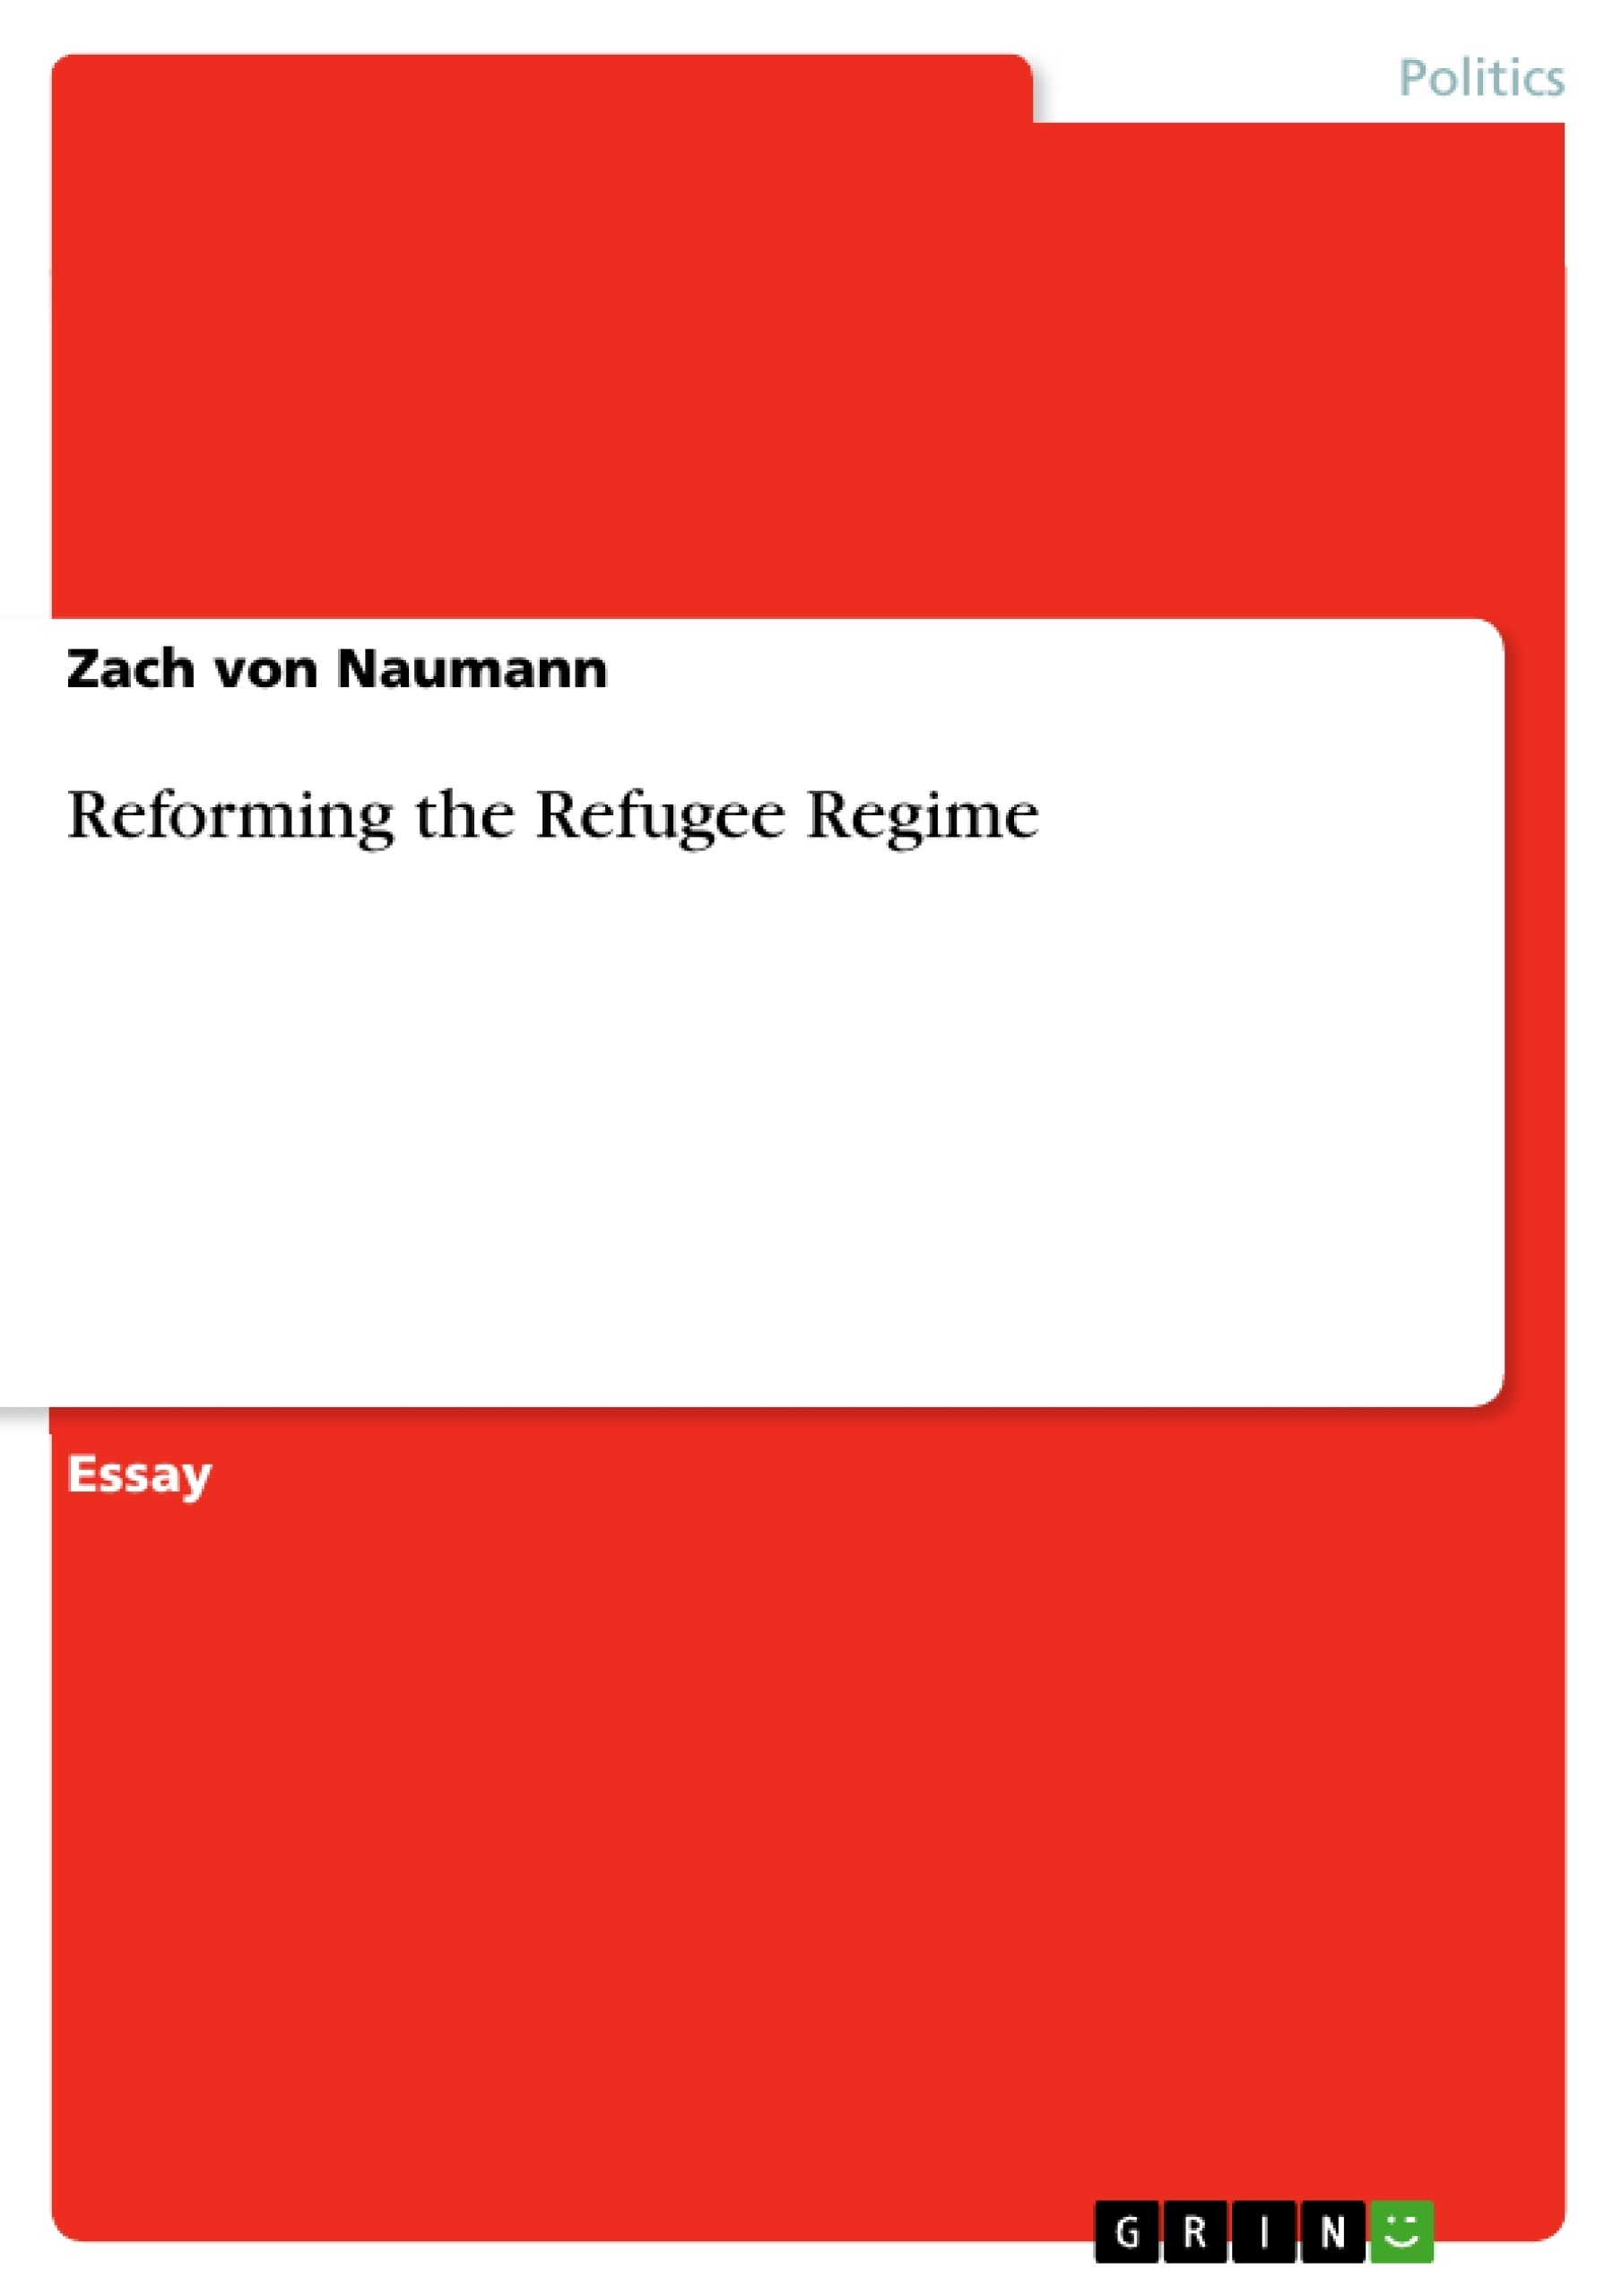 Title: Reforming the Refugee Regime